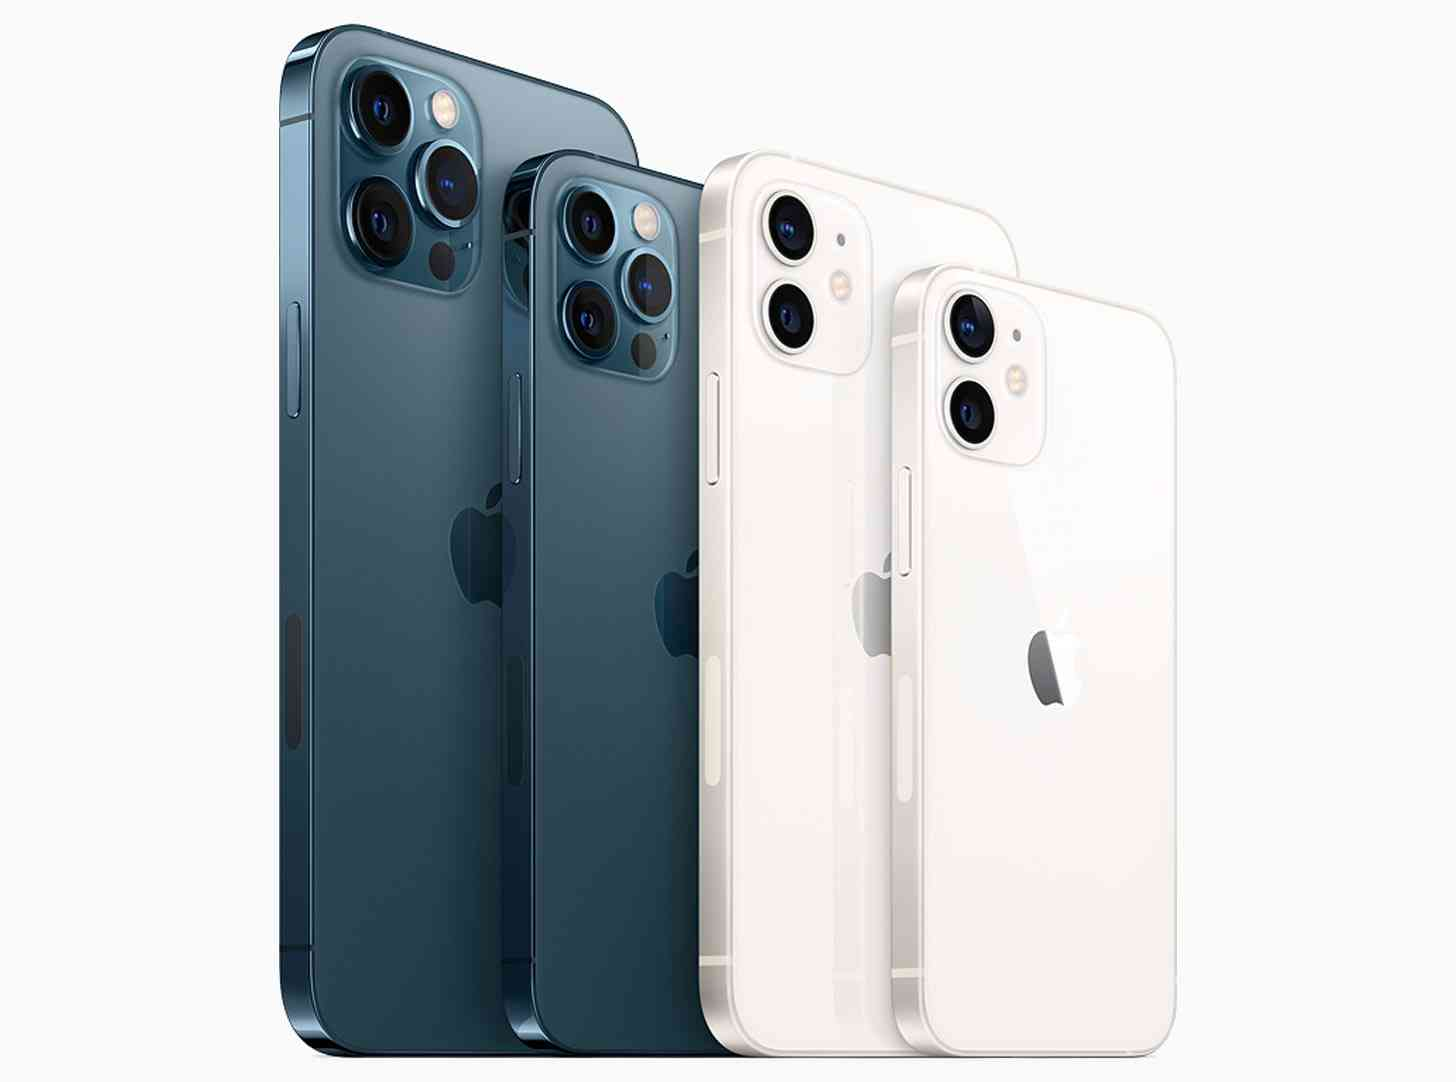 iPhone 12, iPhone 12 Pro lineup